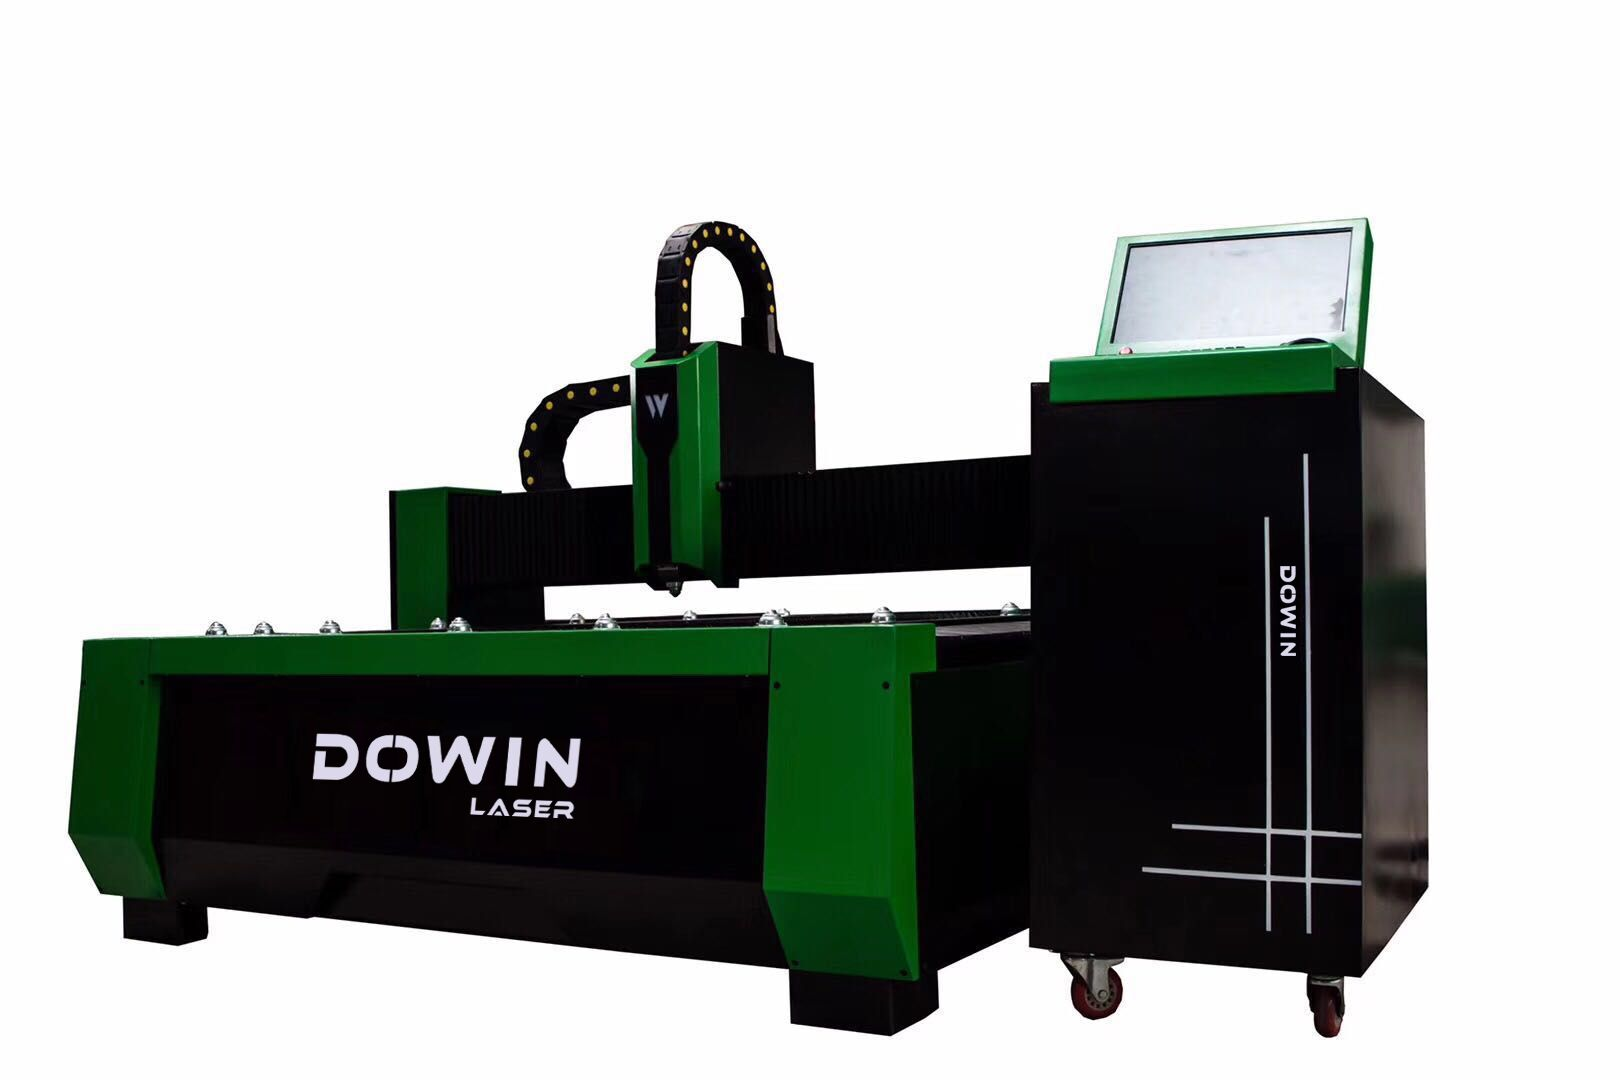 Stainless carbon steel cutter Fiber laser cutting machine metal cutter 300W 500W 750W 1000W